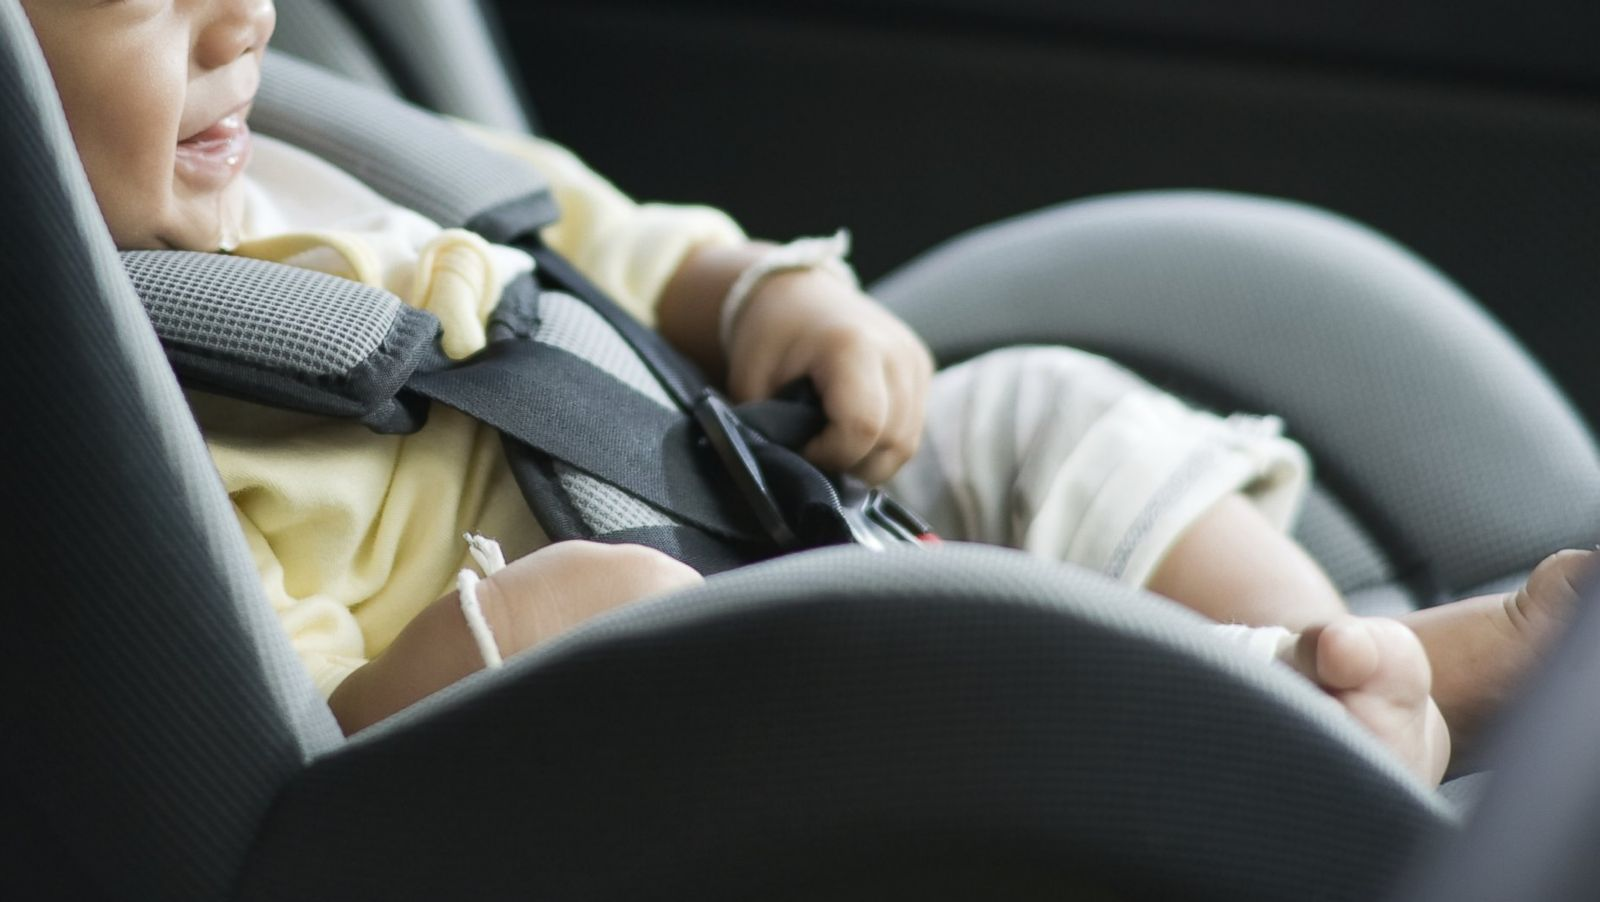 Mother left the baby alone in the car along with a note that became viral